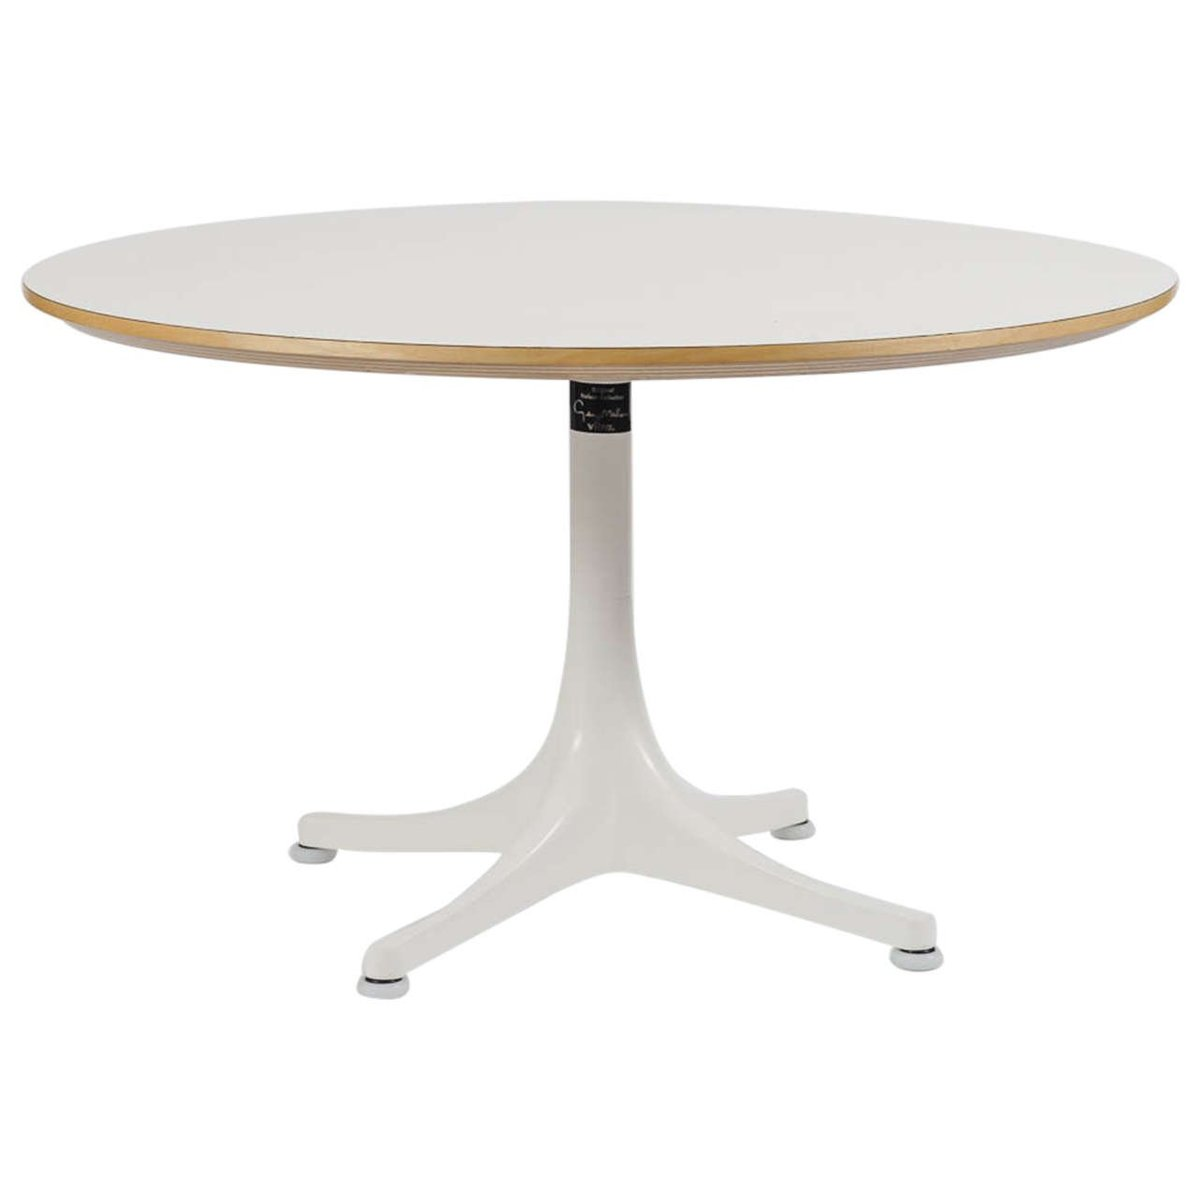 Vintage Pedestal Coffee Table By George Nelson For Vitra For Sale At Pamono